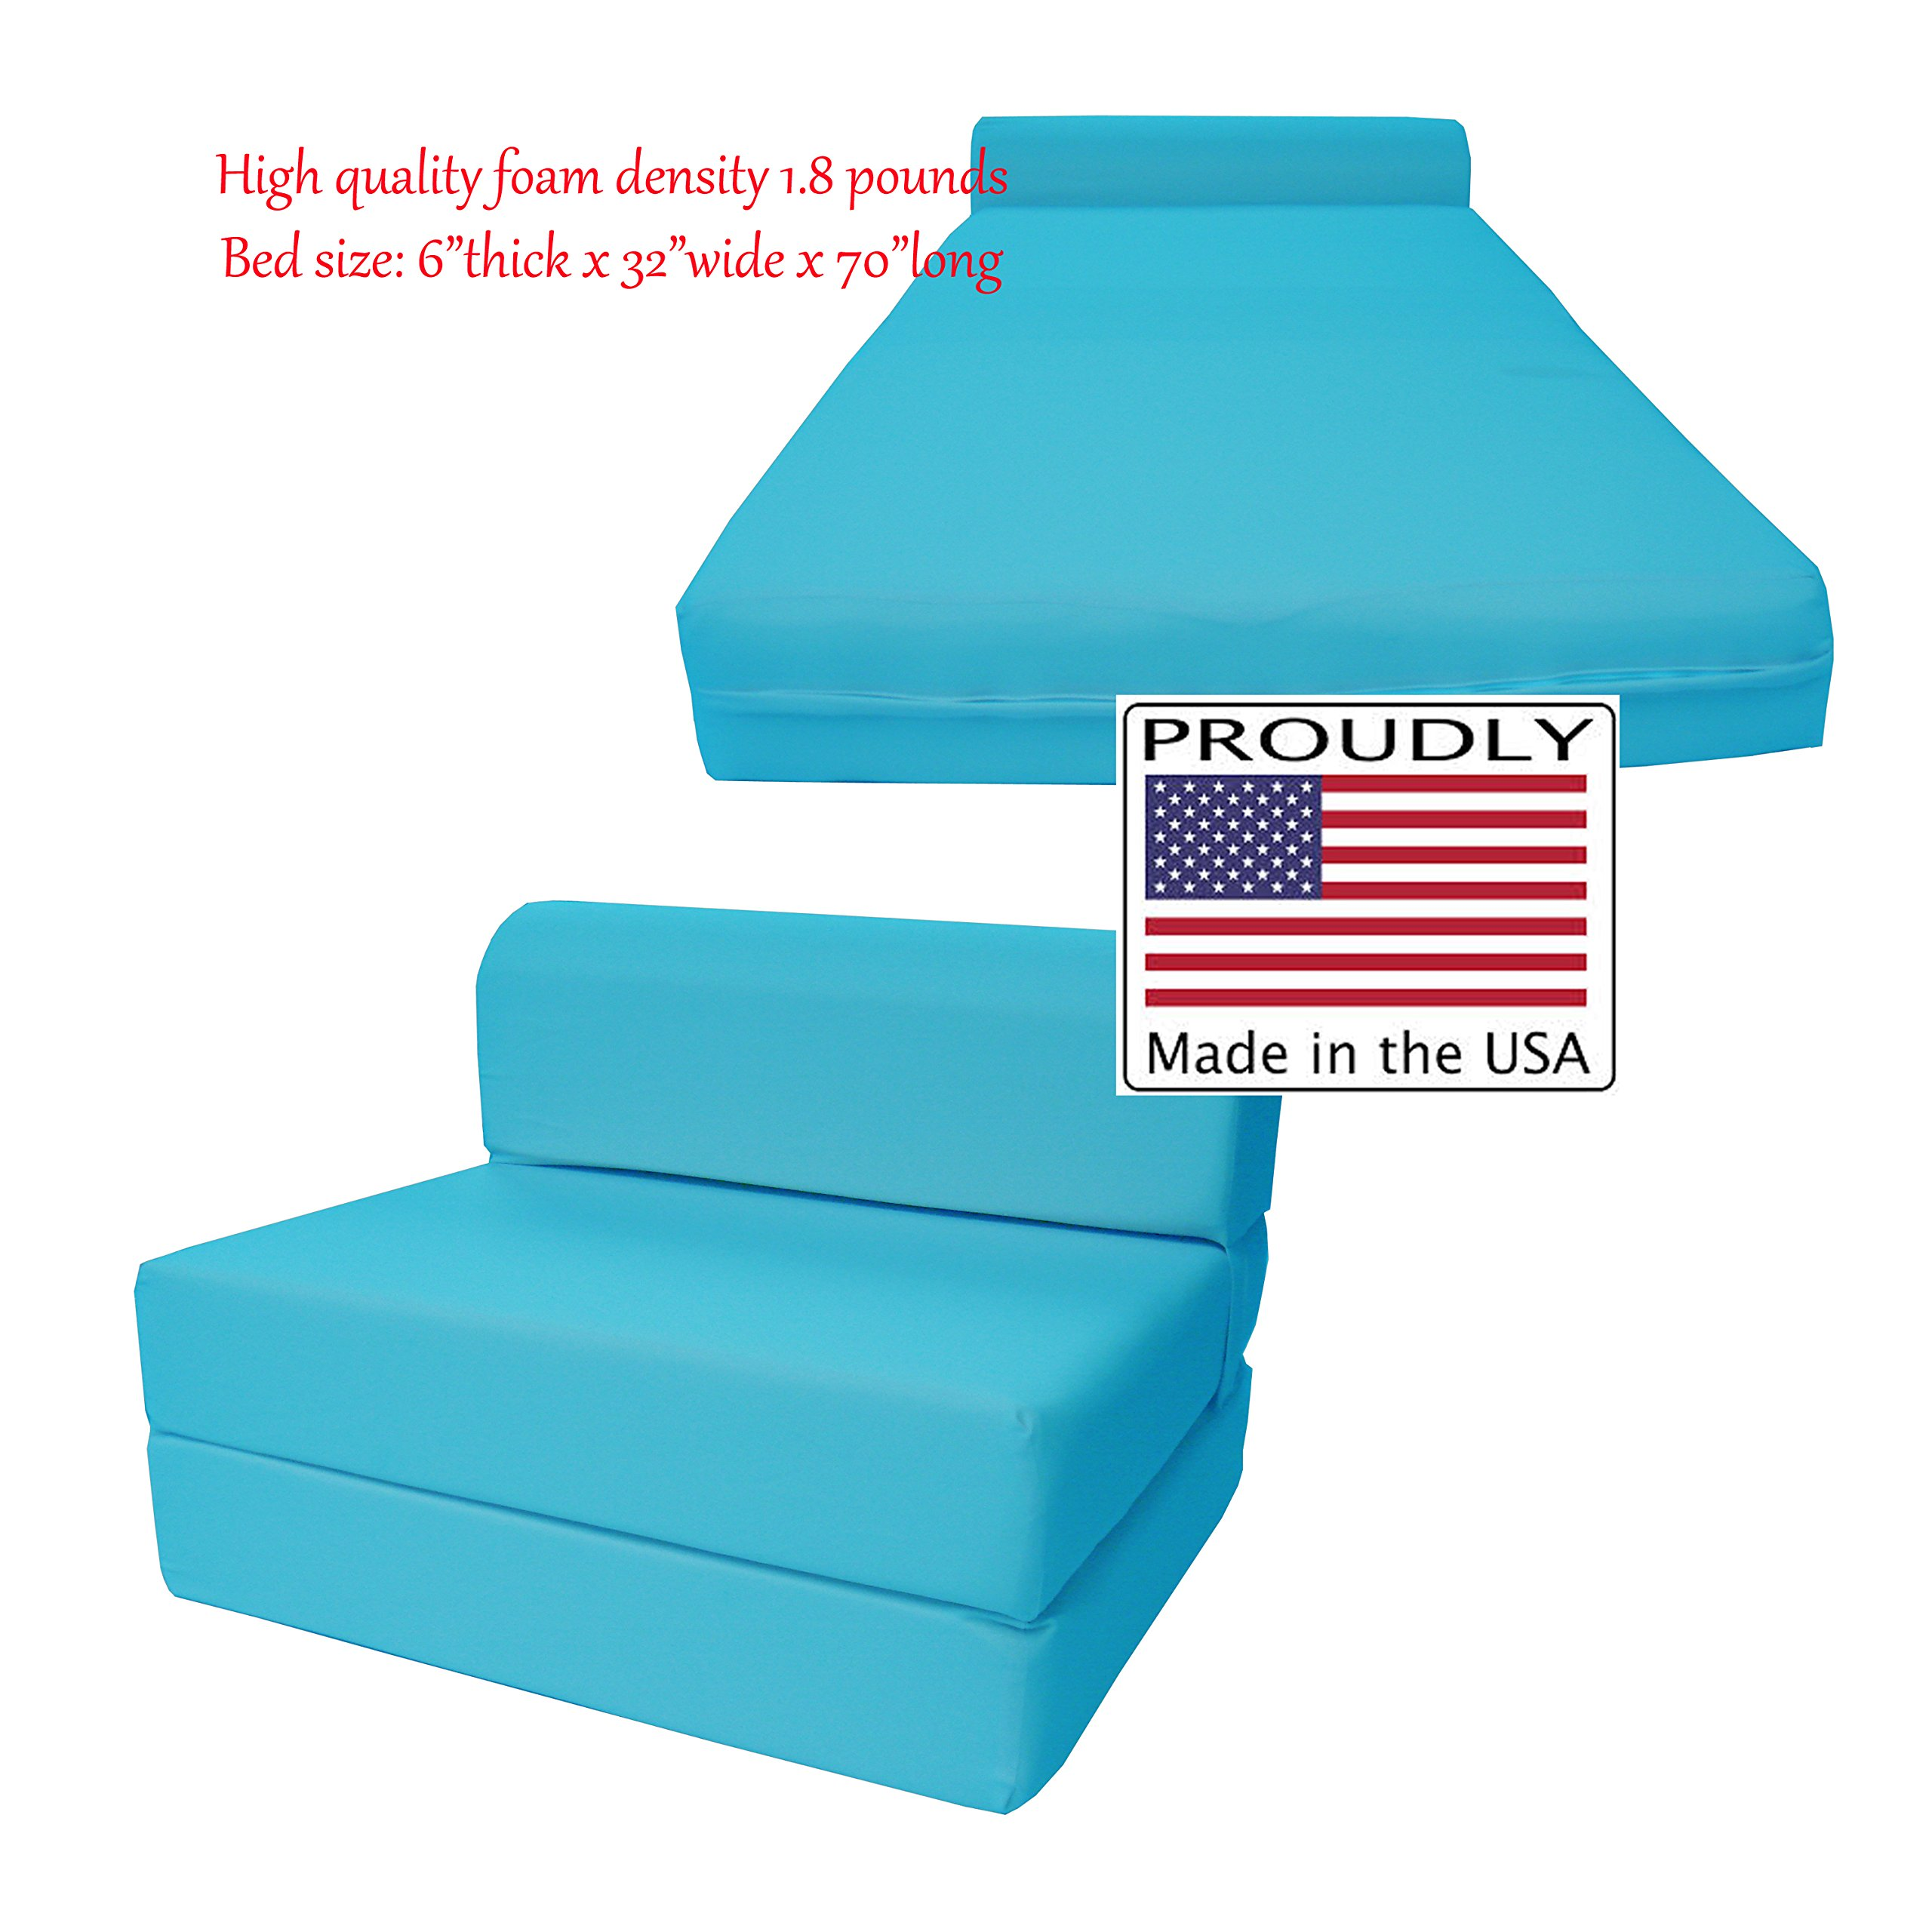 Turquoise Sleeper Chair Folding Foam Bed Sized 6'' Thick X 32'' Wide X 70'' Long, Studio Guest Foldable Chair Beds, Foam Sofa, Couch, High Density Foam 1.8 Pounds. by D&D Futon Furniture